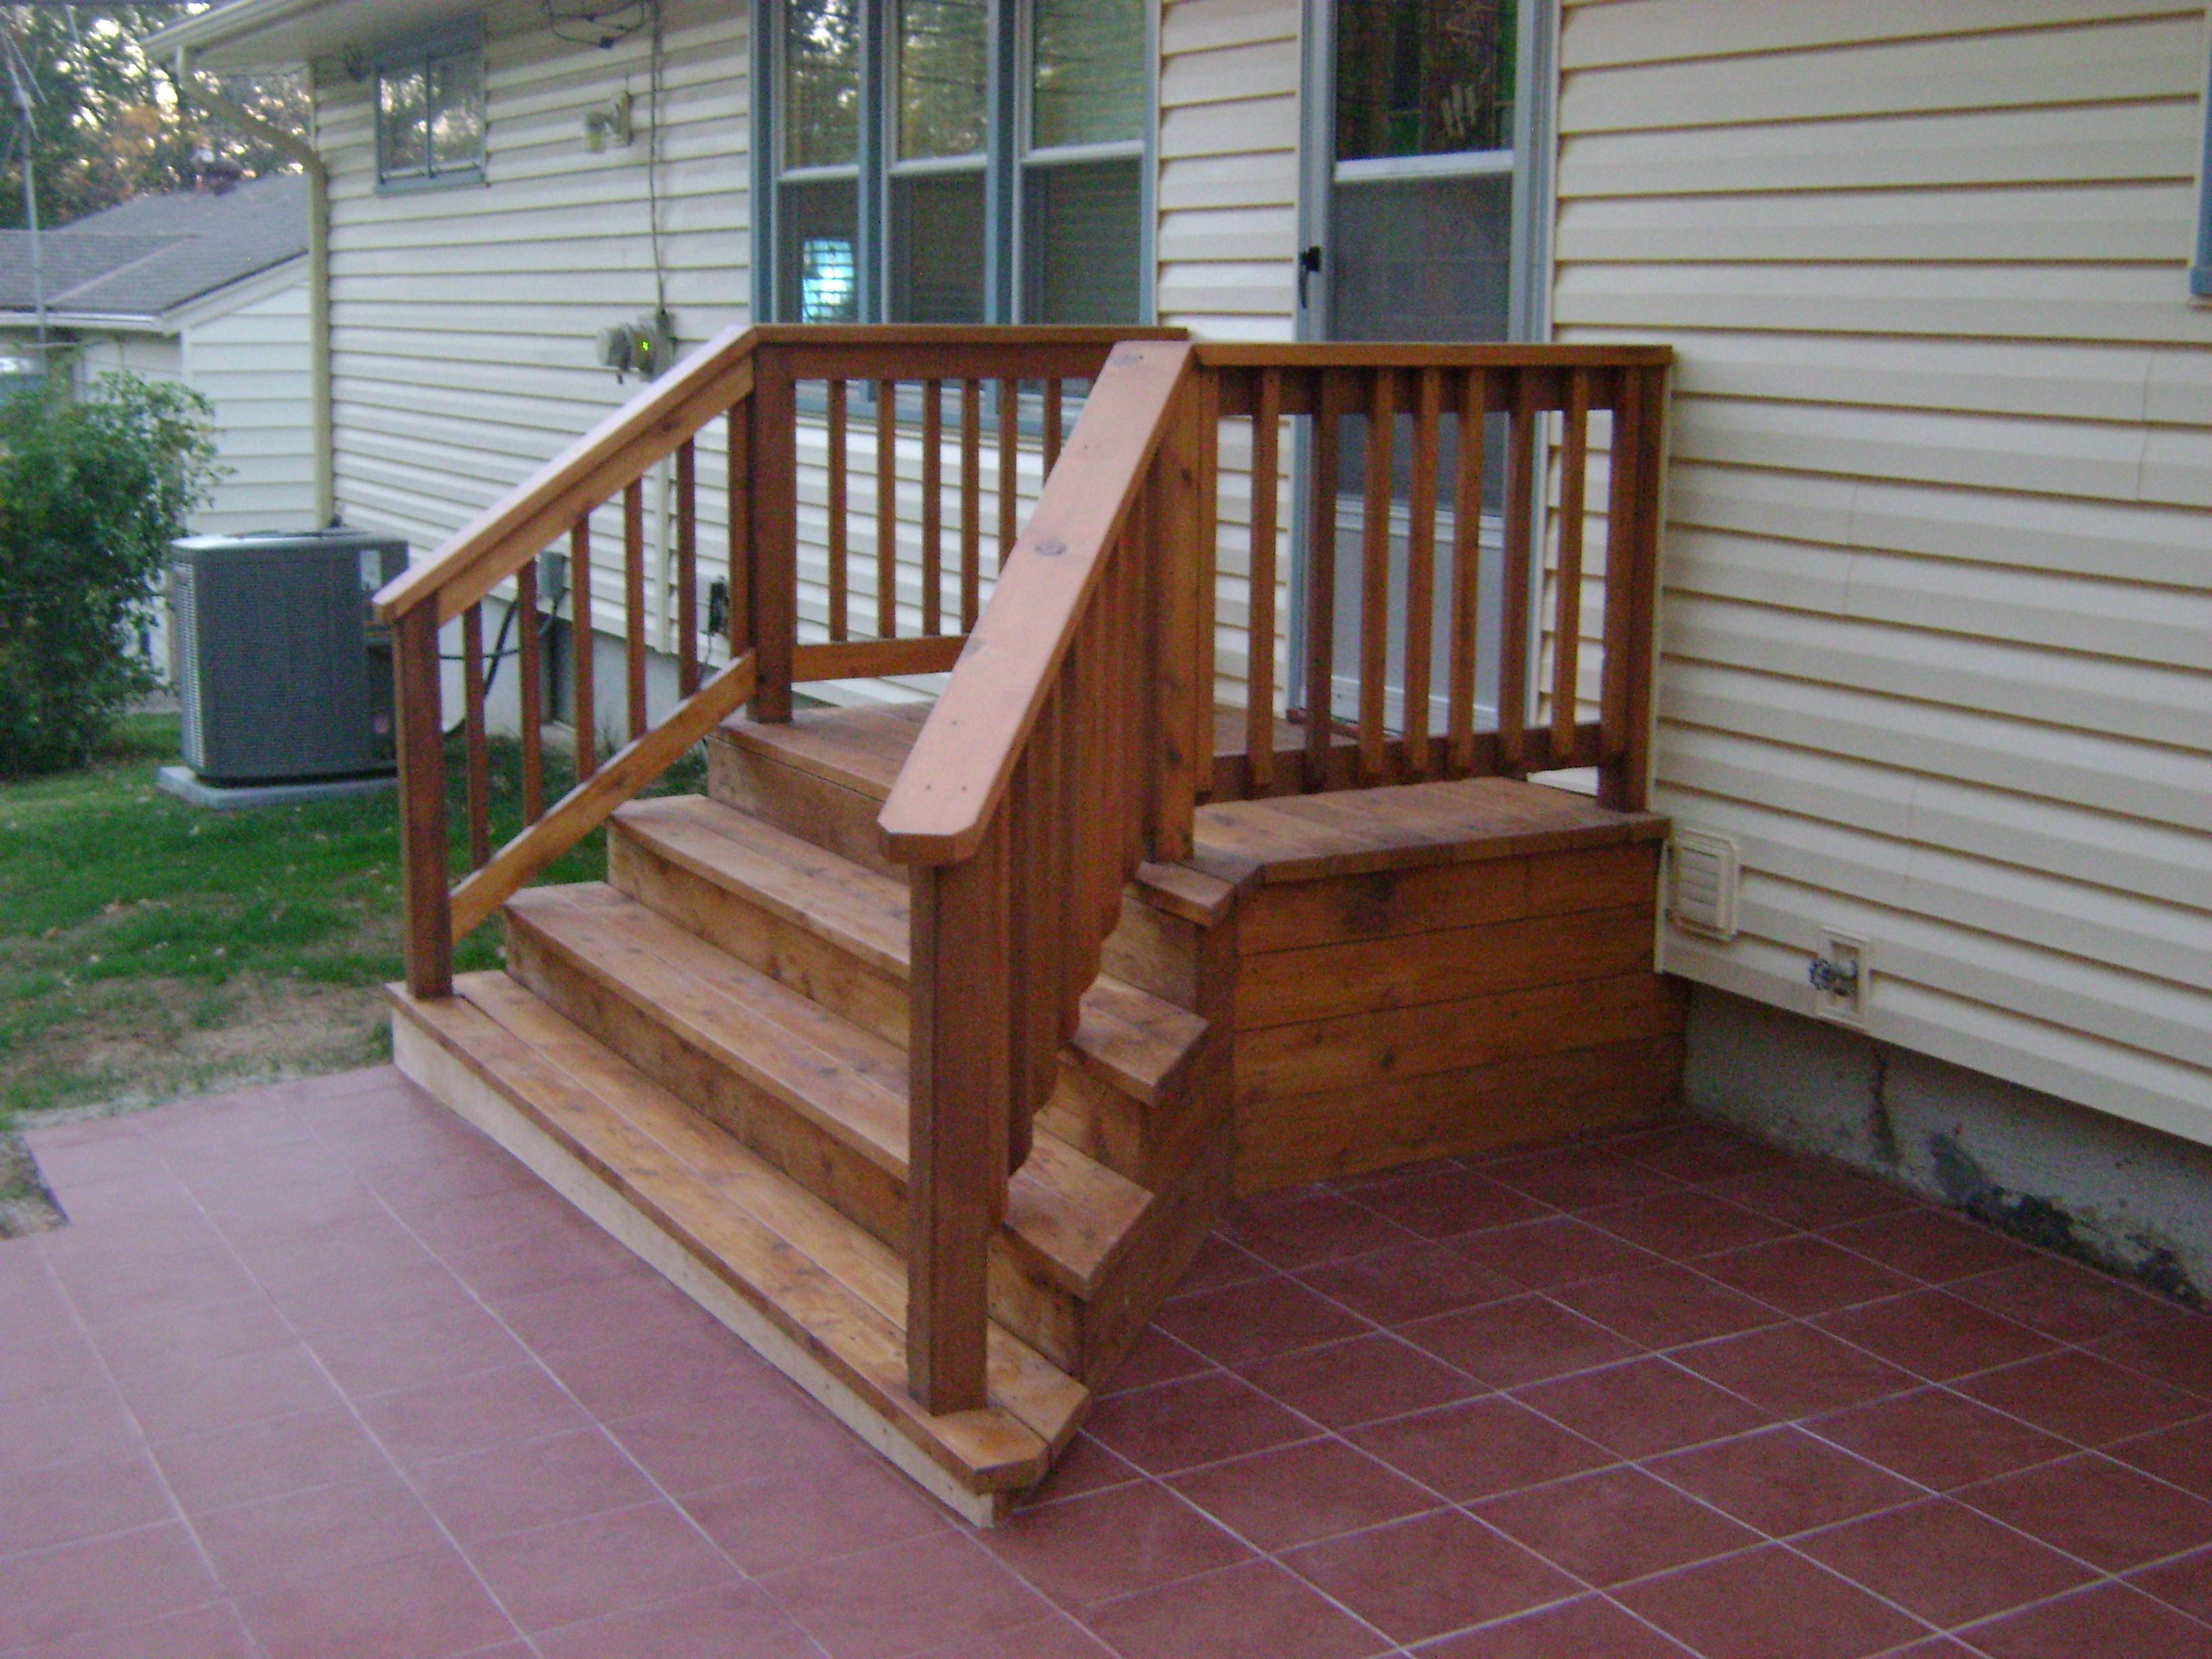 While This Homeowner Wanted A Very Small Deck Off The Back The New Outdoor T Small Backyard Decks Backyard Deck Ideas On A Budget Small Deck Ideas On A Budget